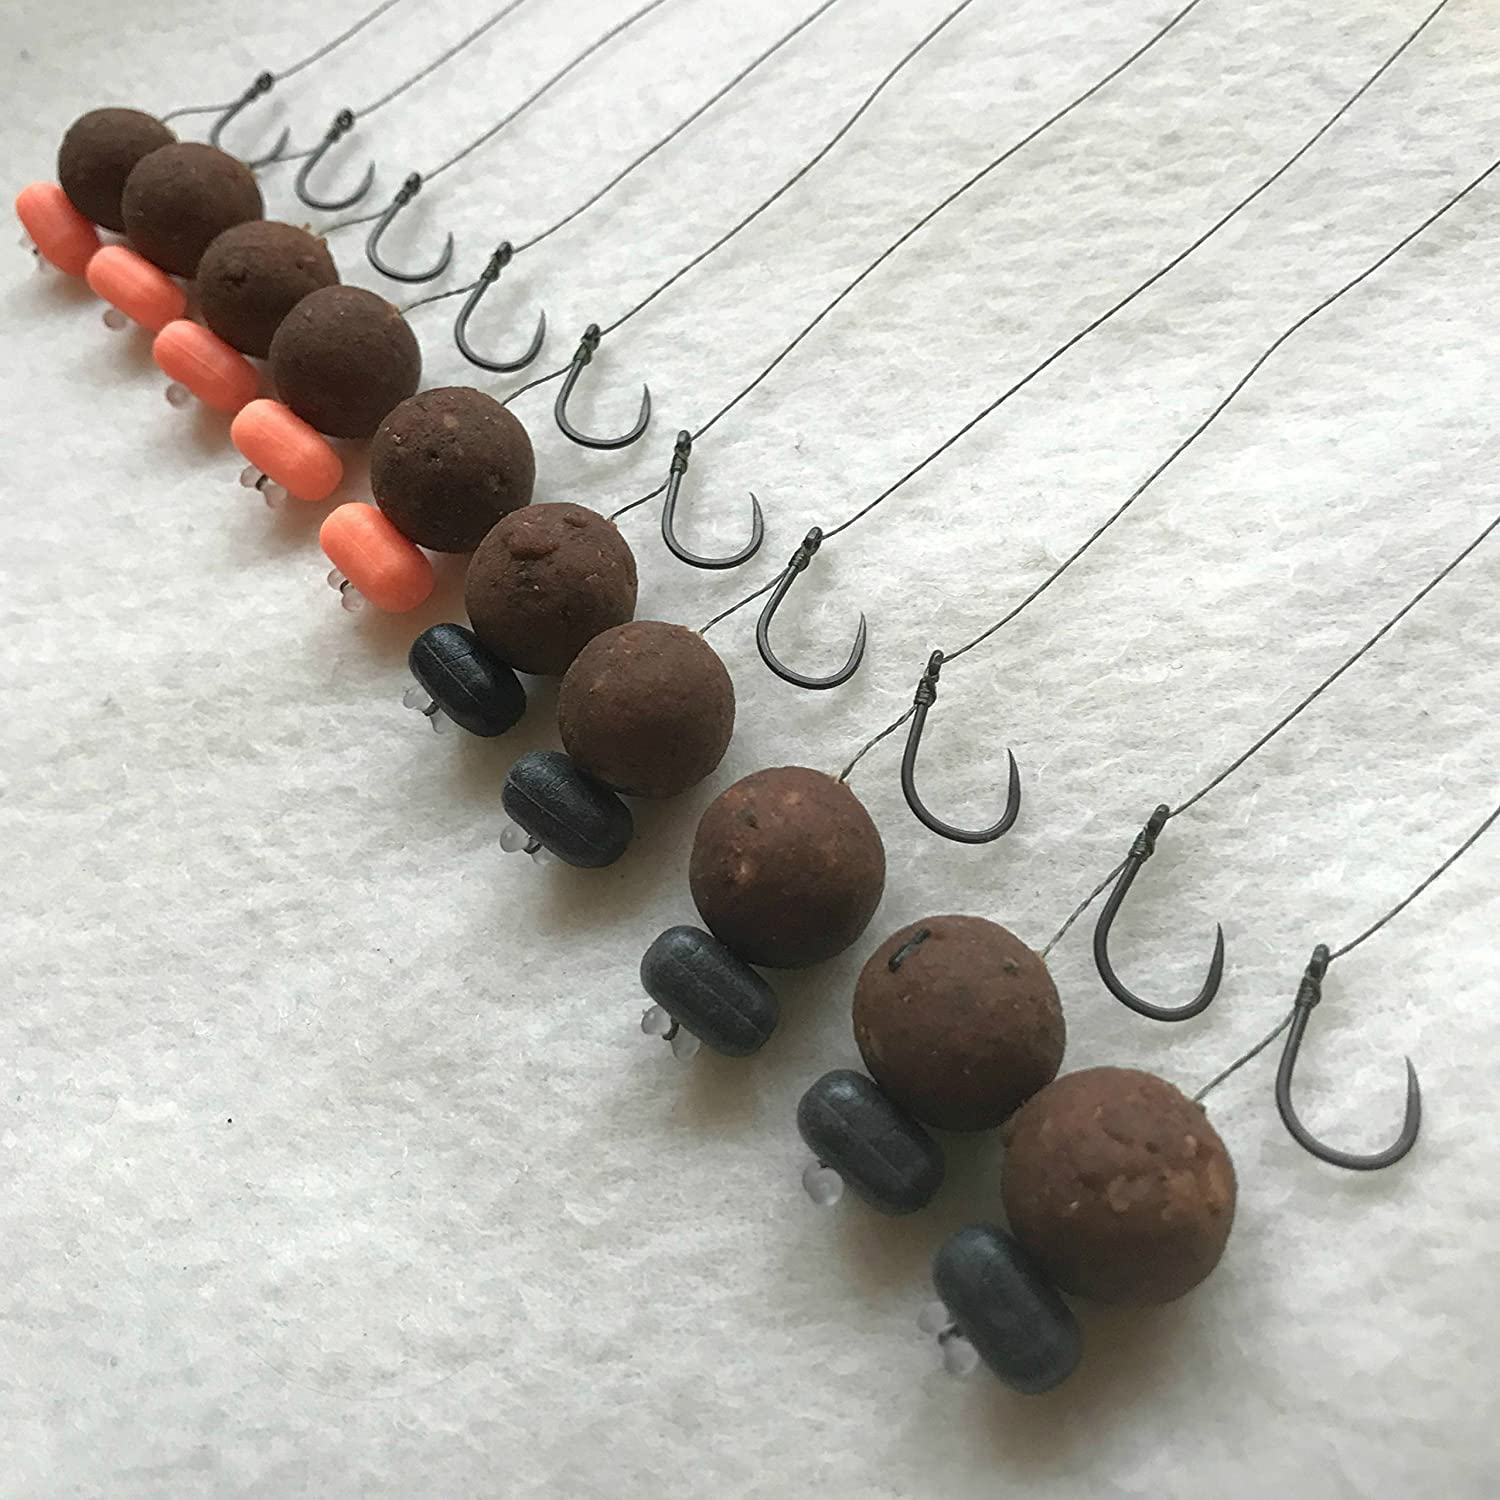 10 X KD CARP HAIR RIGS PRELOADED WITH 15mm DYNAMITE BAITS THE CRAVE BOILIES